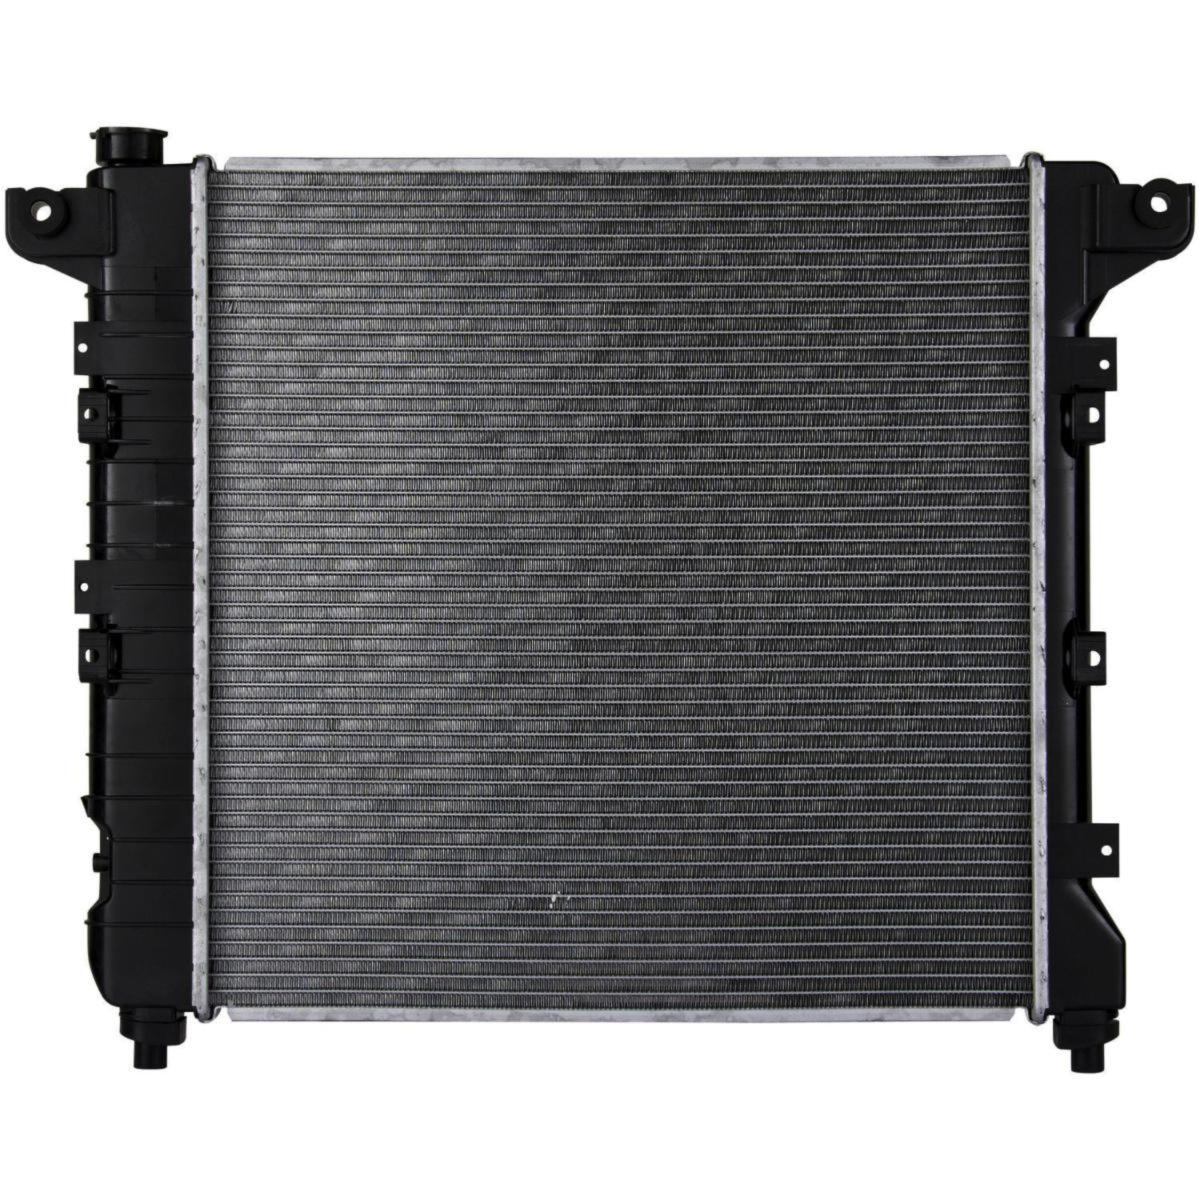 Radiator For Dakota 97-99 Durango 98-00 3.9 V6 5.2 5.9 V8